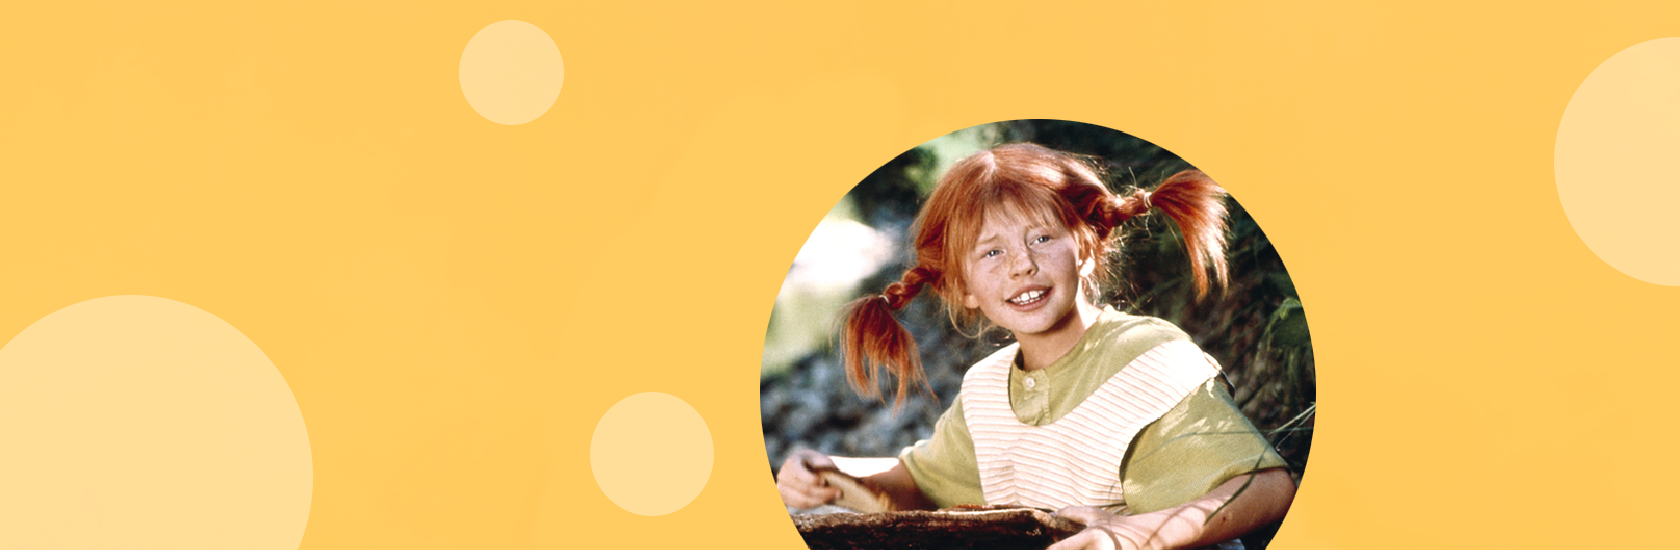 Header-Pippi-Langstrumpf